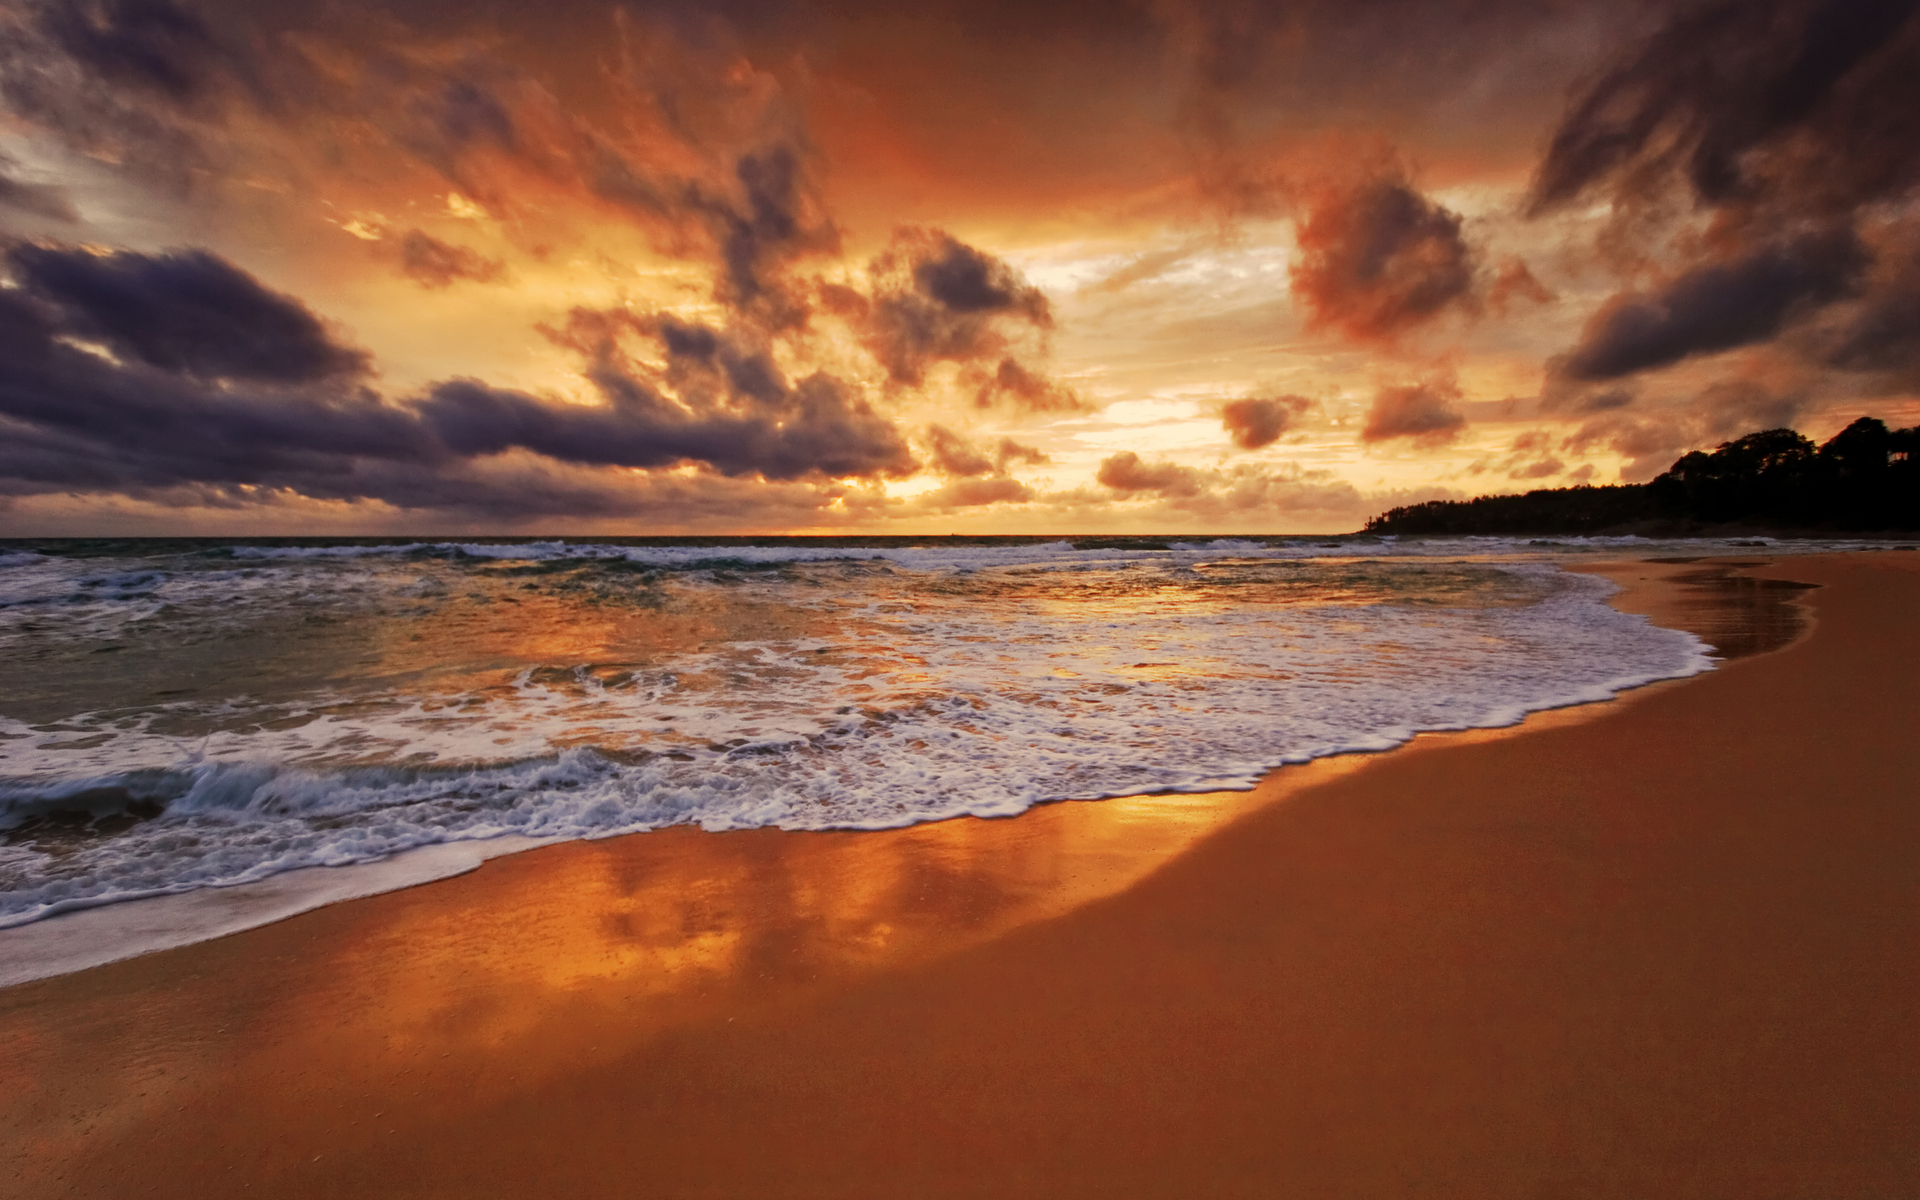 Beach Sunset 1920x1200 #2314 HD Wallpaper Res: 1920x1200 | DesktopAS ...